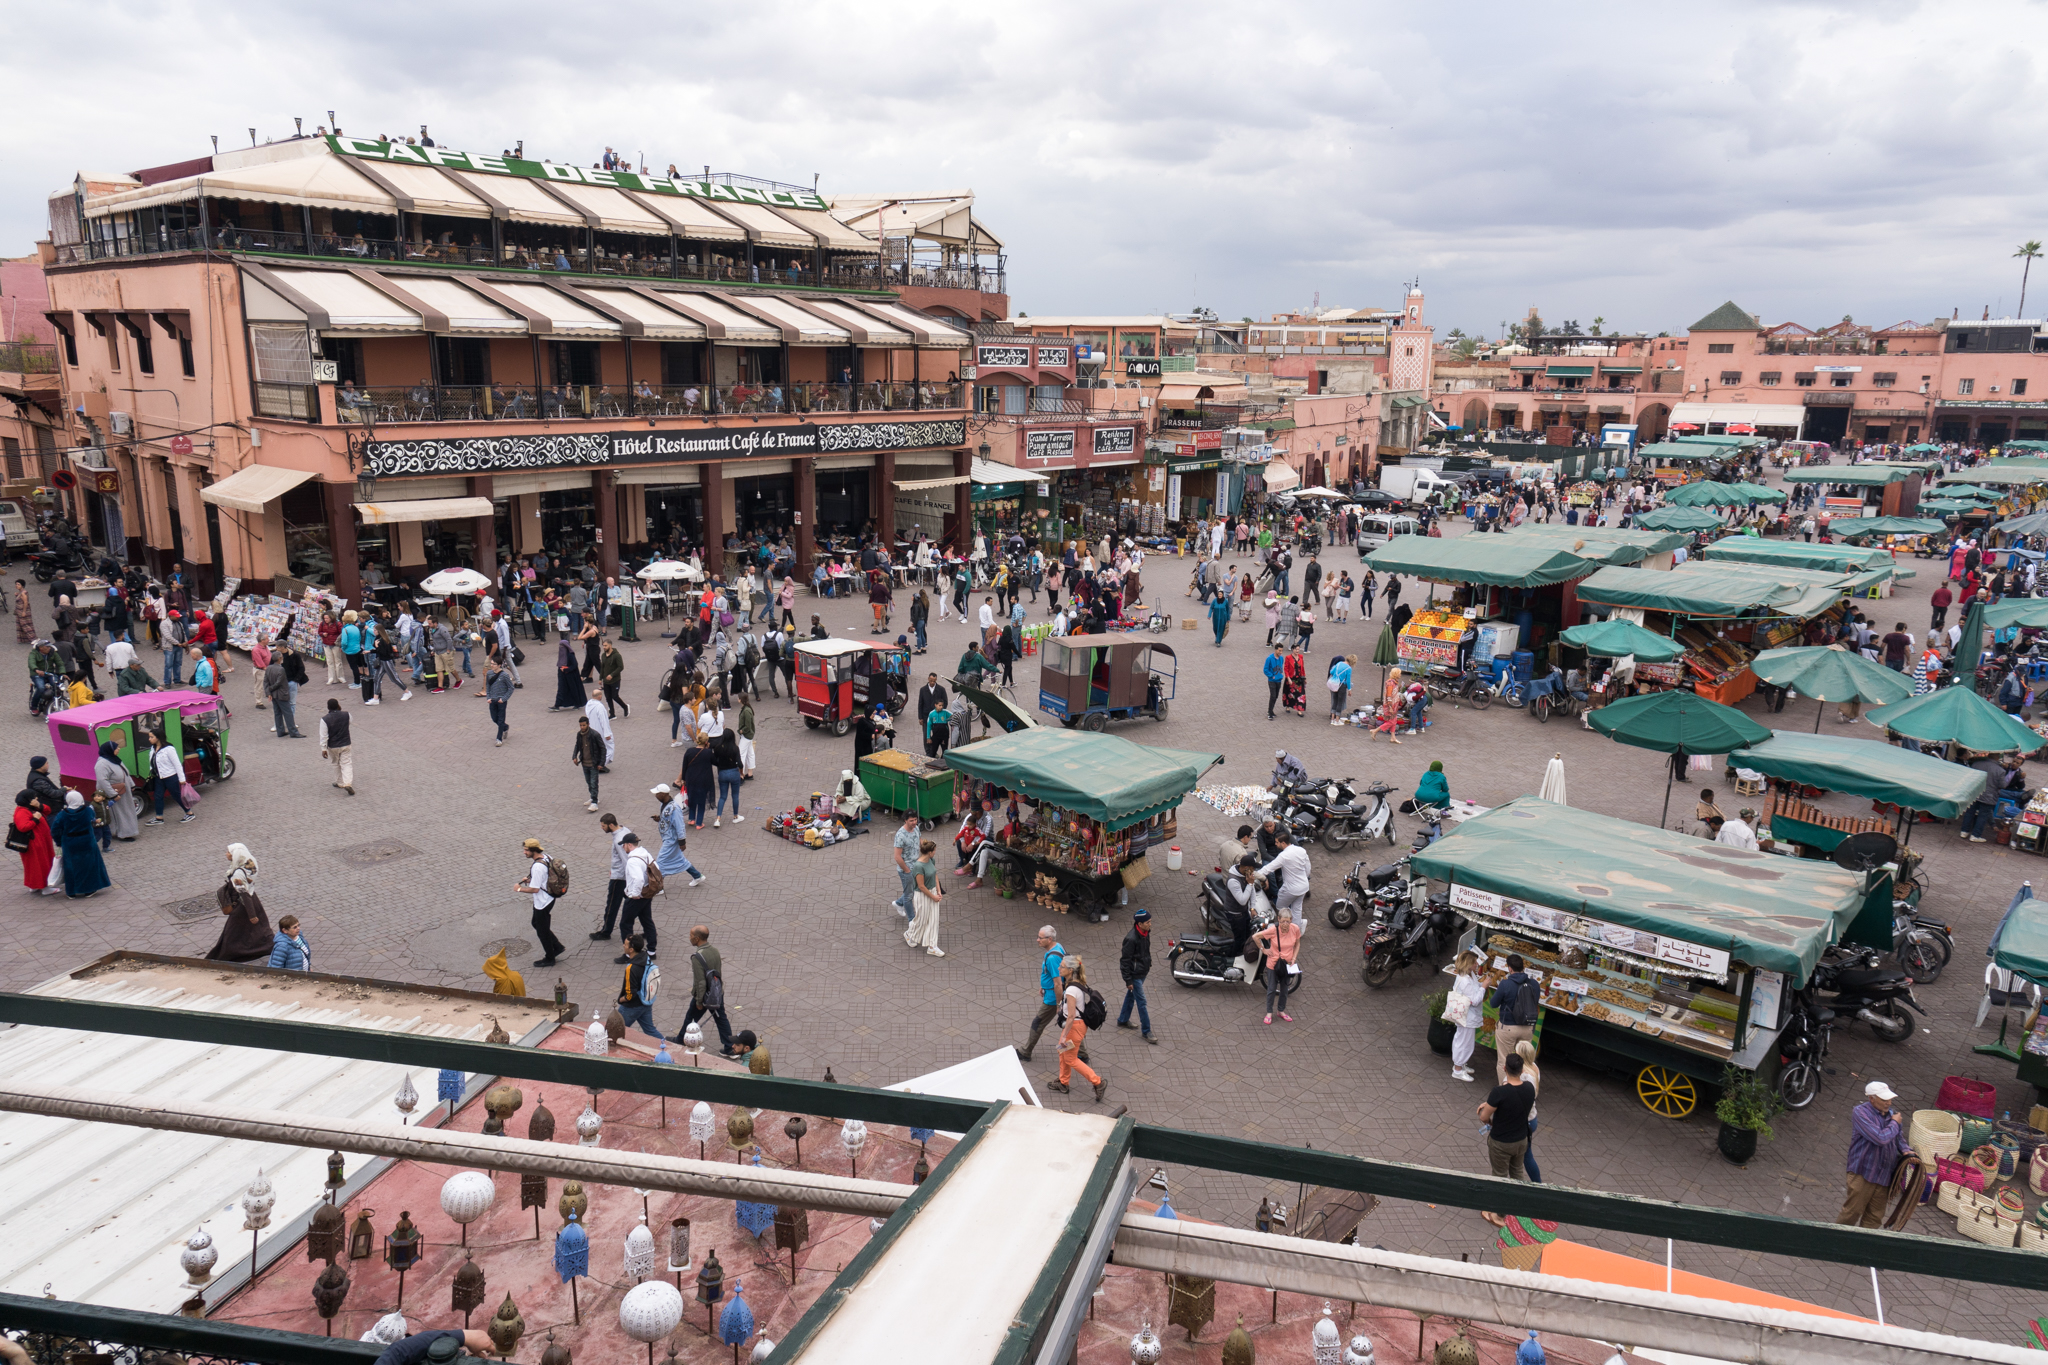 Jemaa el-Fna, the main square in the heart of Marrakech